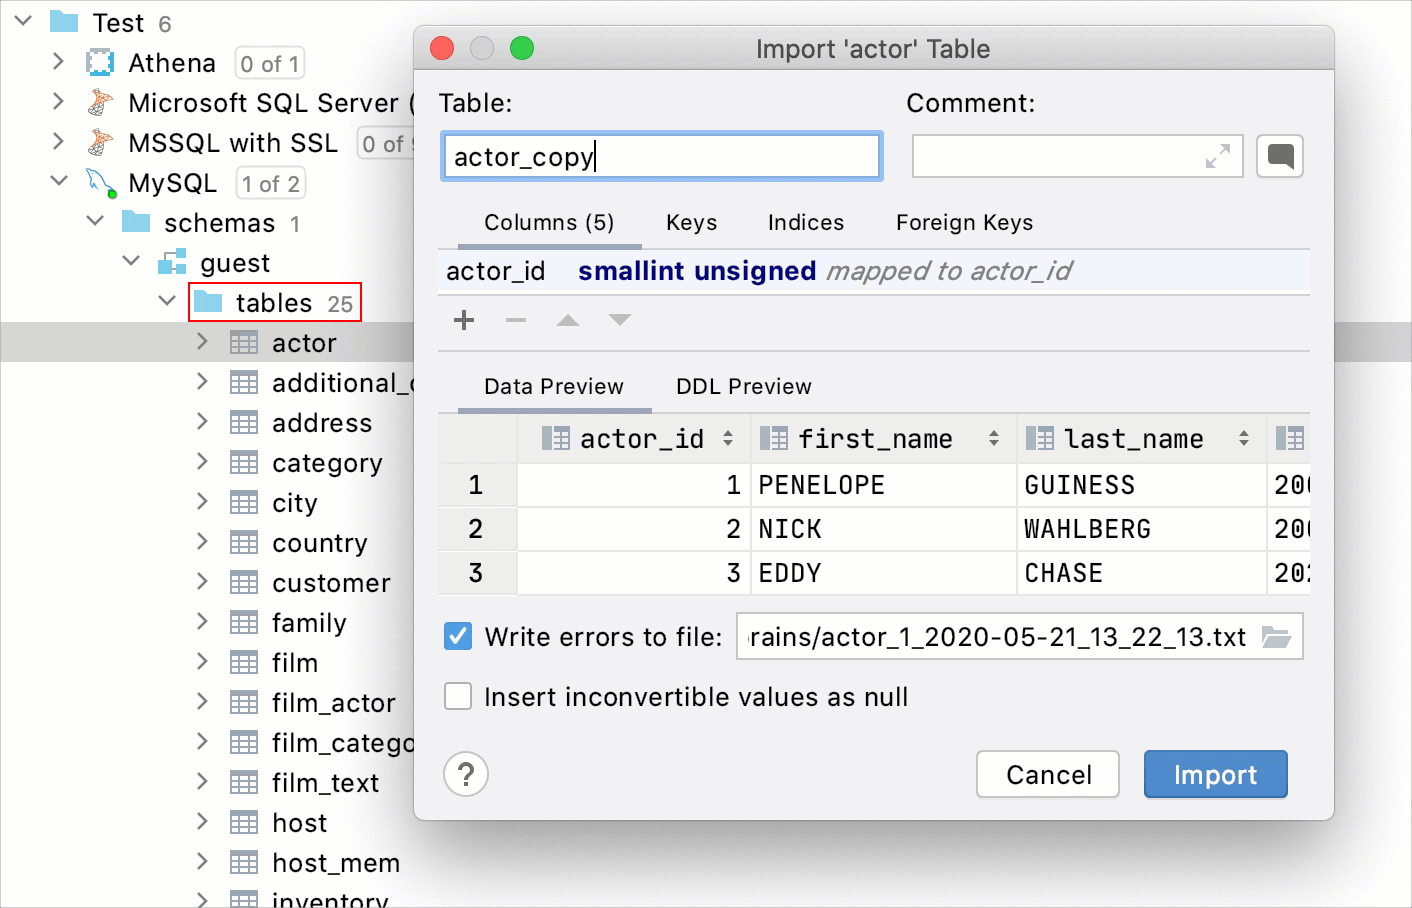 Drag to create a table copy